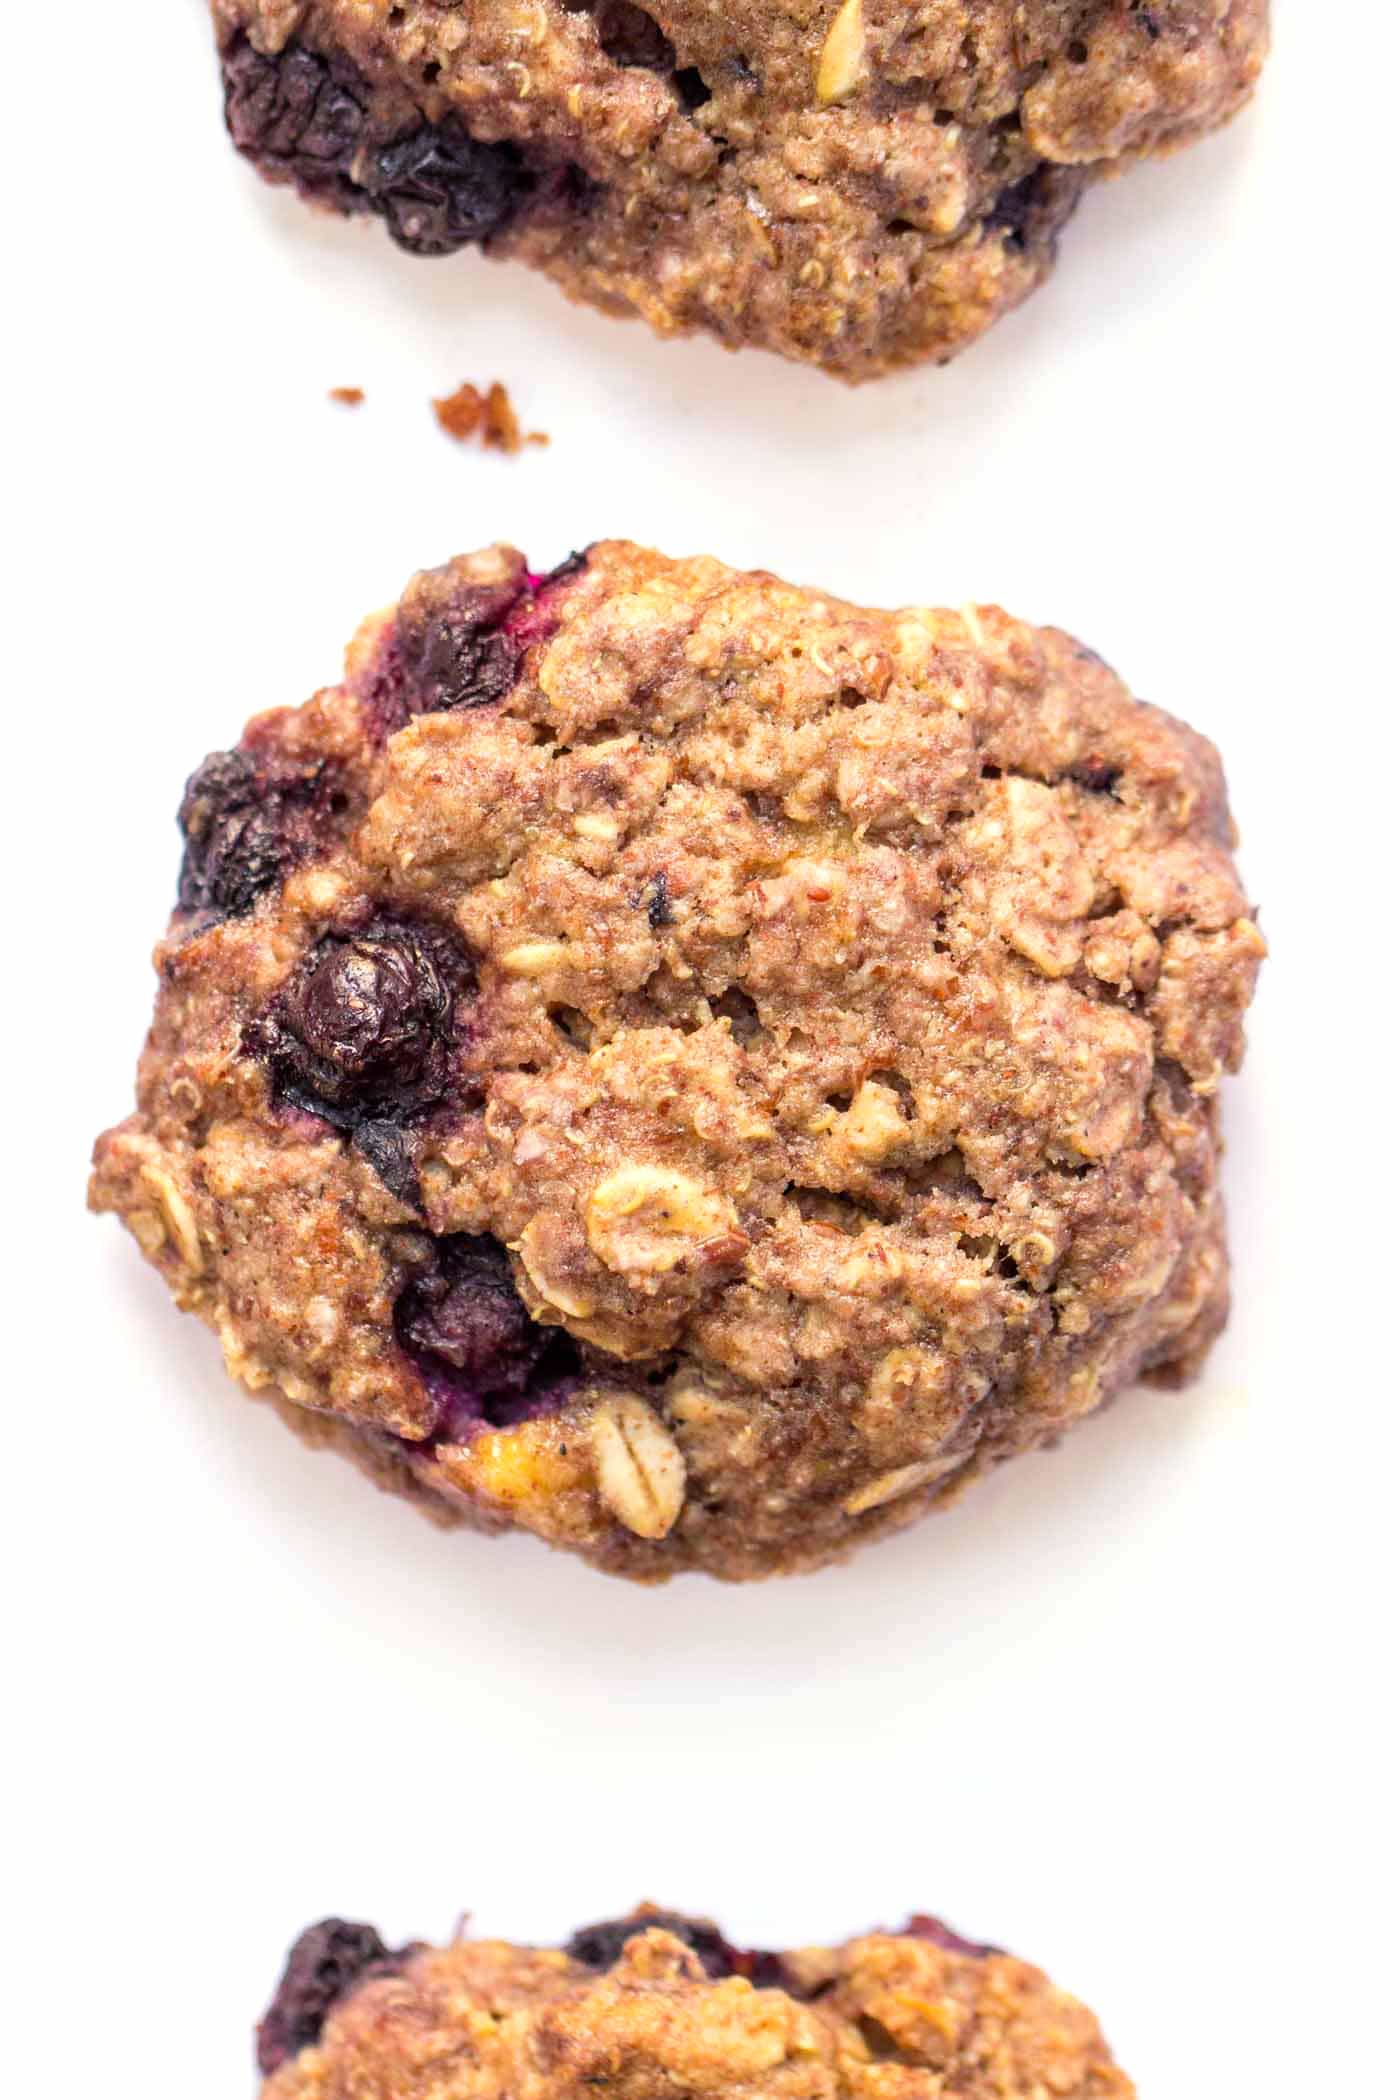 Blueberry Quinoa Breakfast Cookies -- made with oats, quinoa flakes and loads of other nutritious ingredients! [vegan + gluten-free]